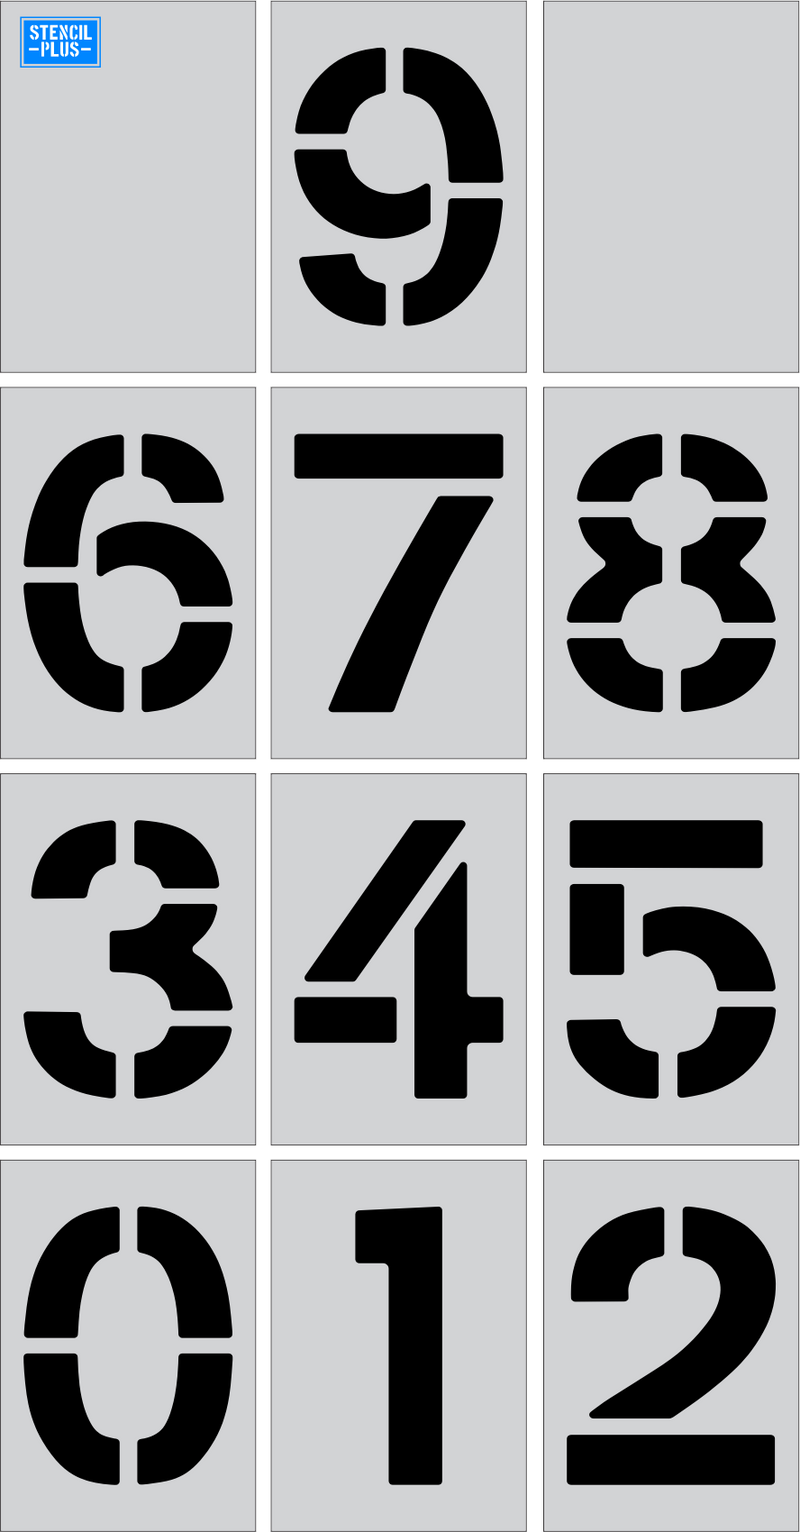 "5"" Number Kit Parking Lot Pavement Marking Stencil"